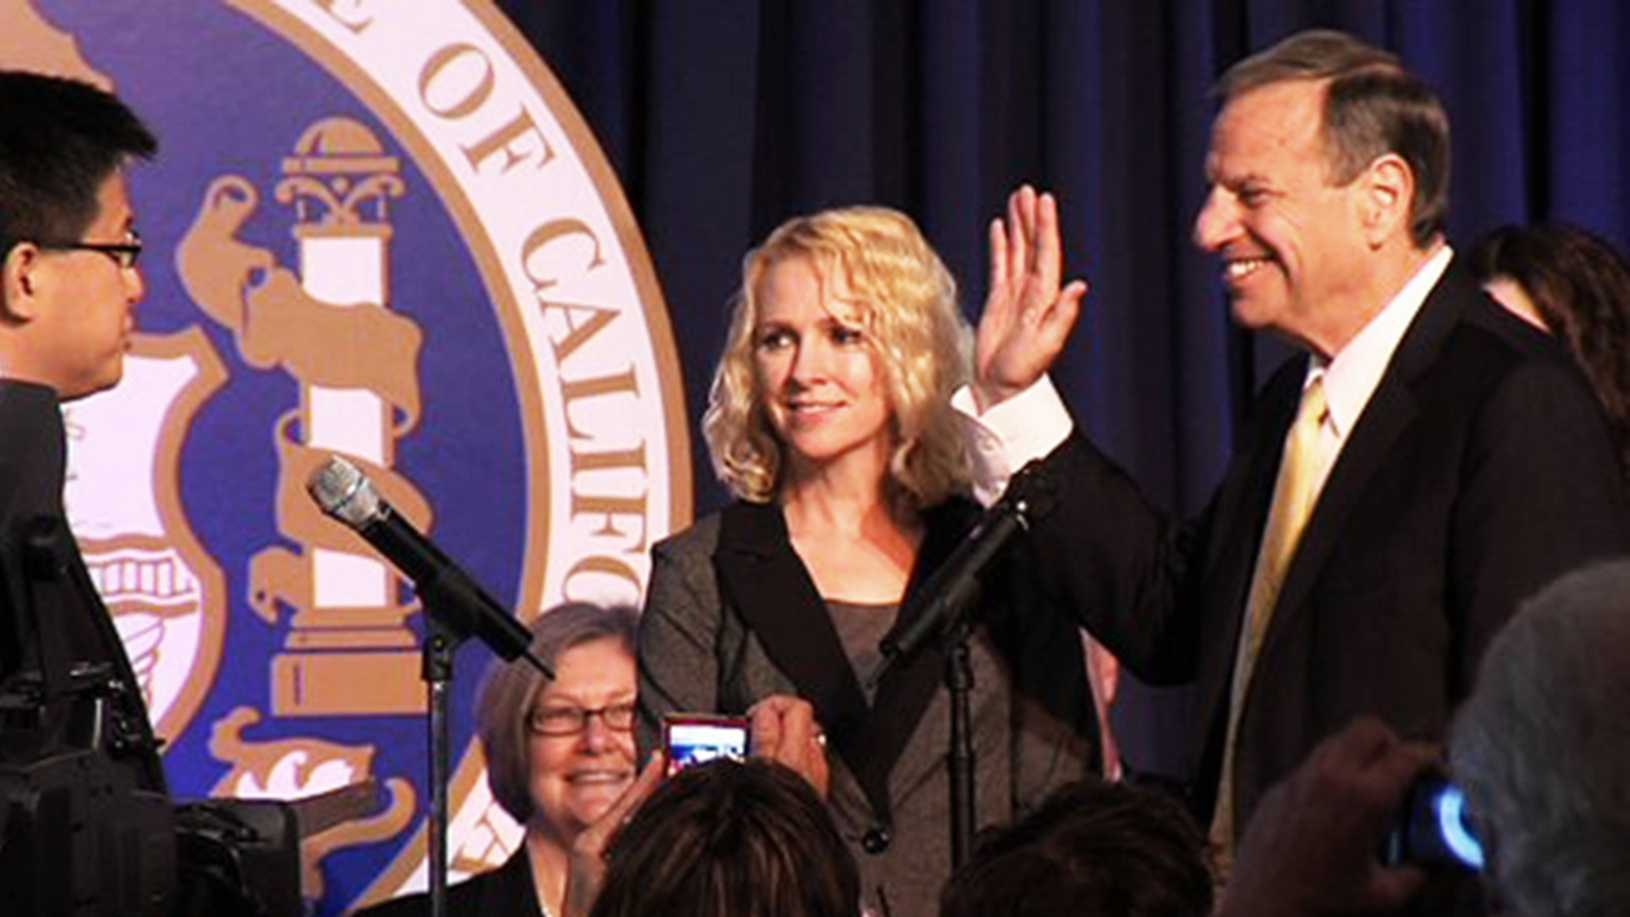 This is San Diego Mayor Bob Filner being sworn in as mayor with his then-fiance Bronwyn Ingram smiling next to him.